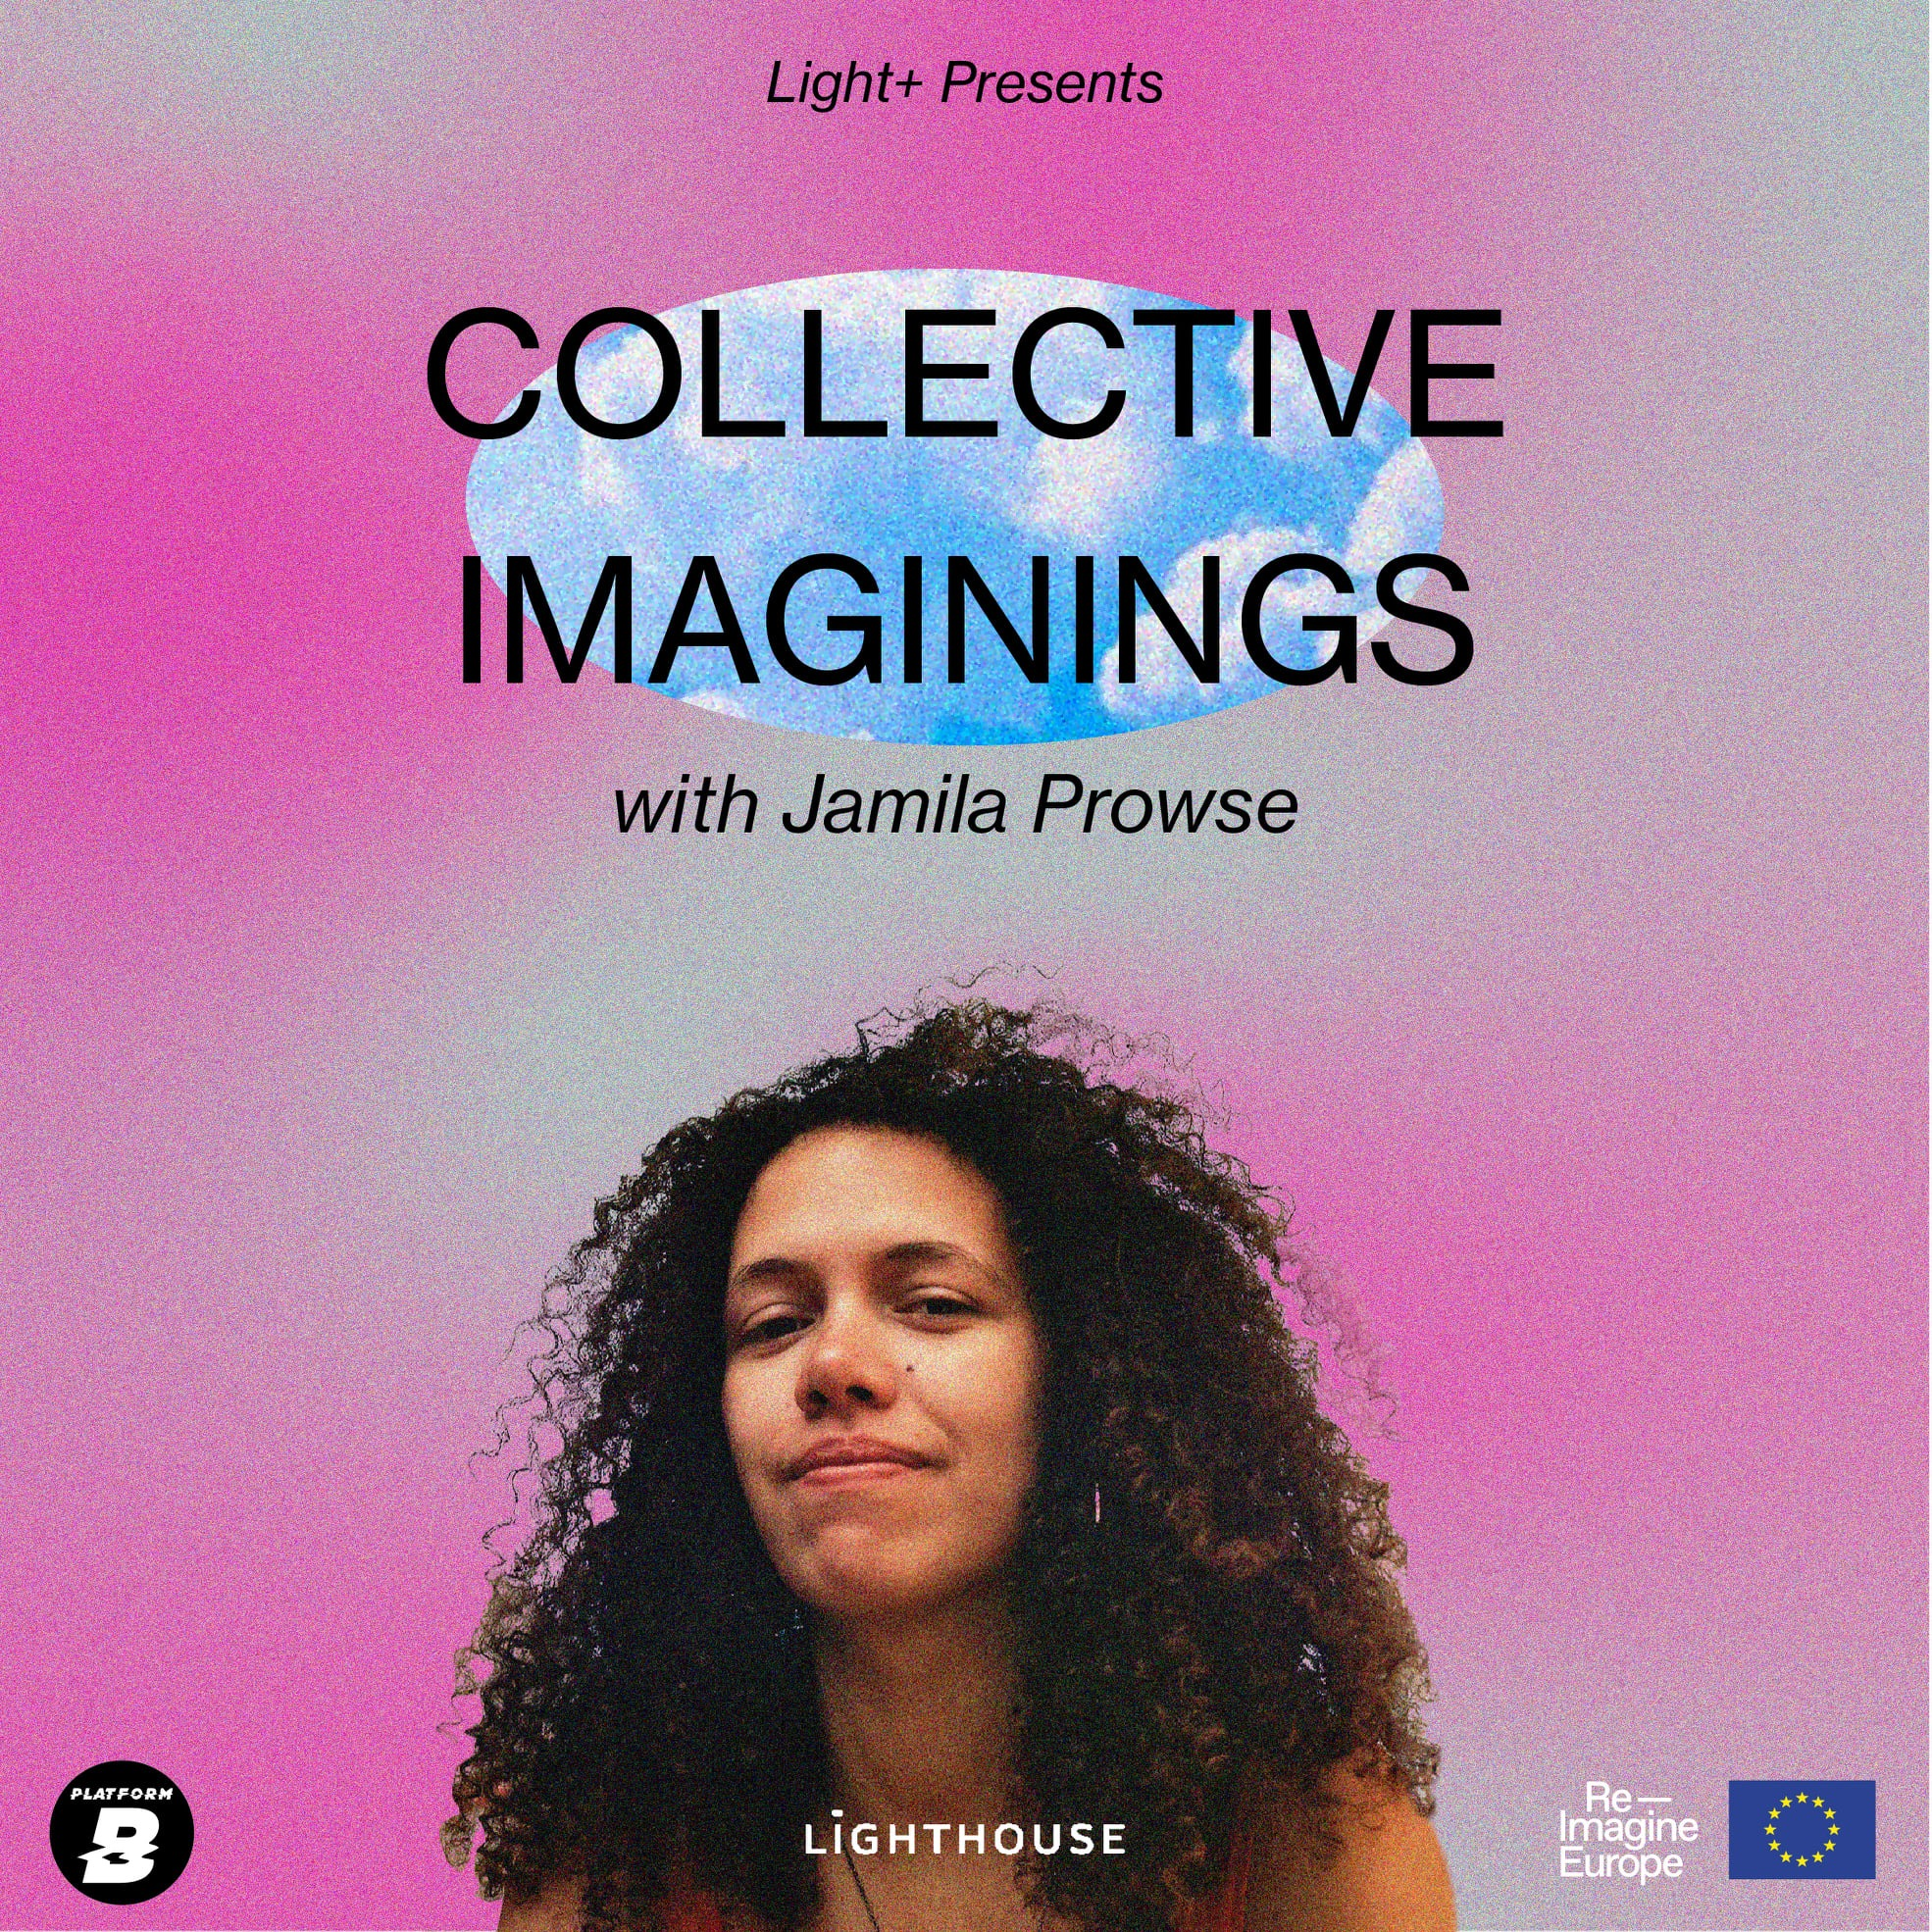 Light+ Collective Imaginings podcast series with Jamila Prowse